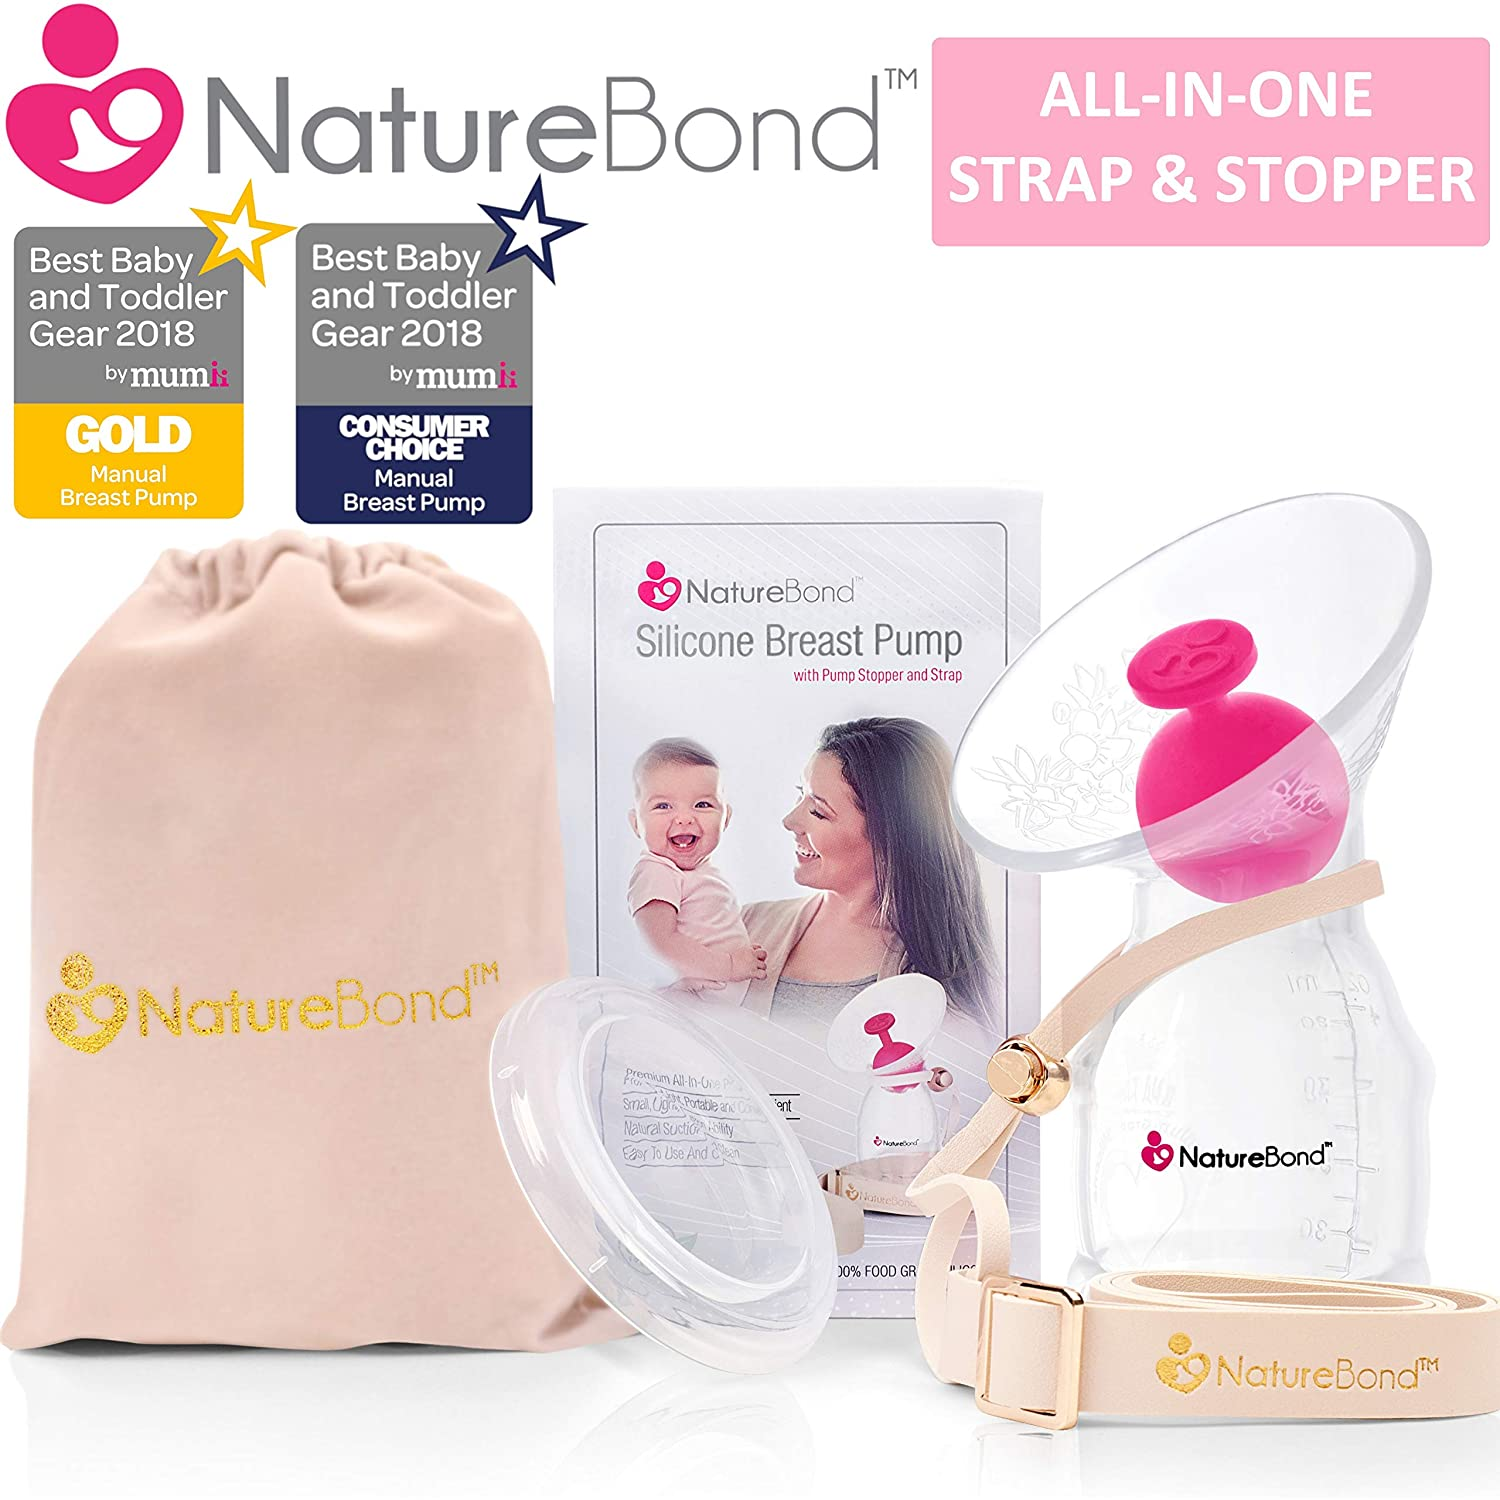 NatureBond Silicone Manual Breast Pump Image